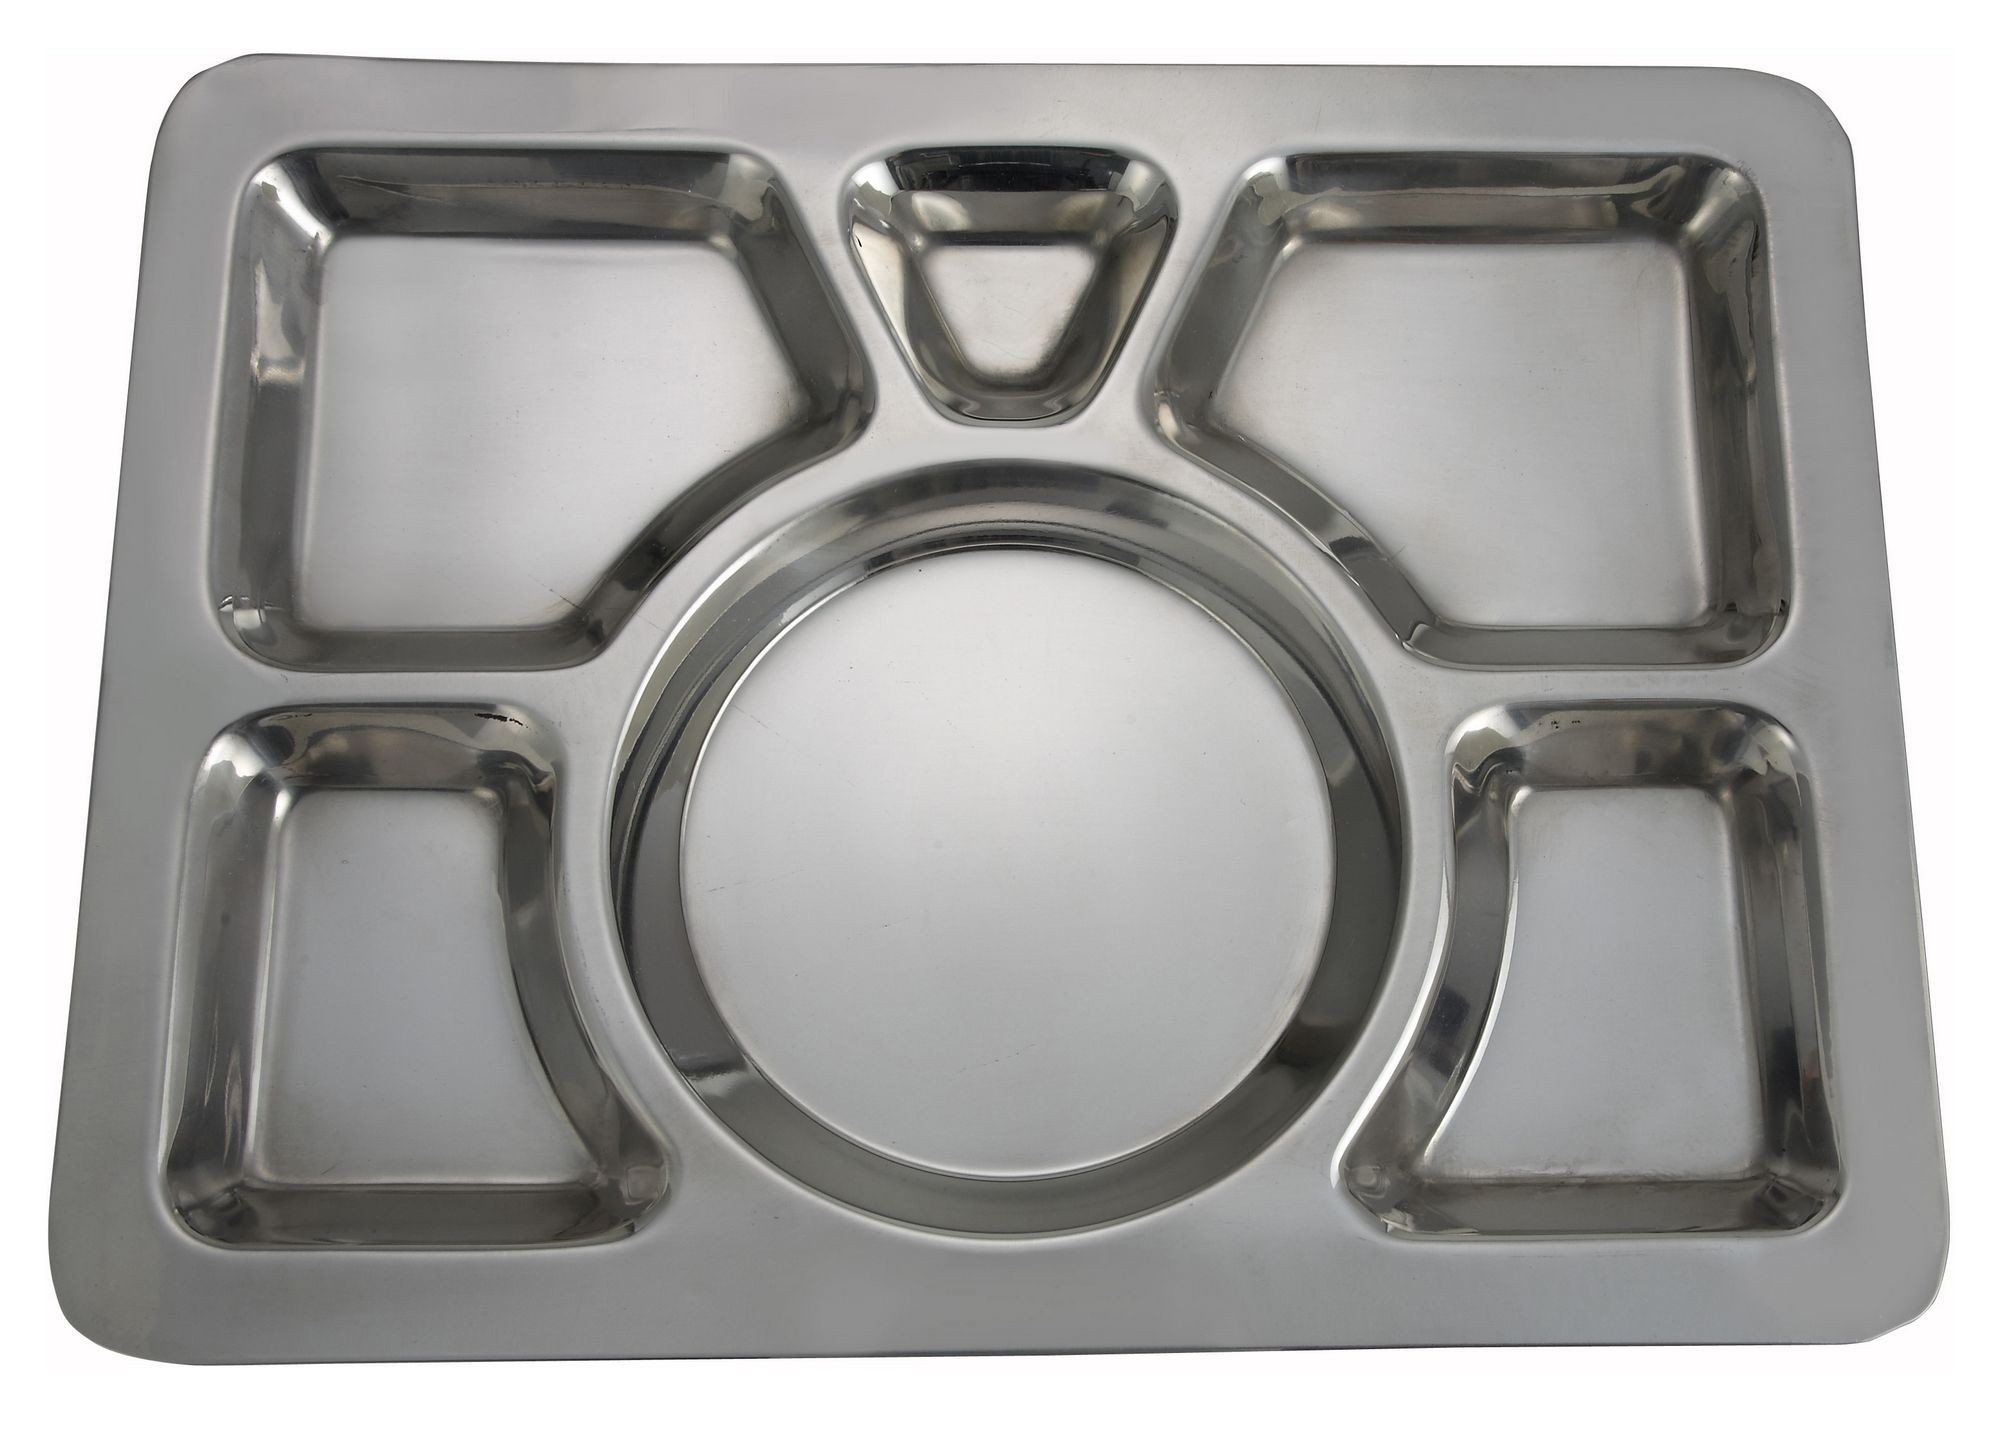 Winco SMT-1 Stainless Steel 6-Compartment Mess Tray, Style A